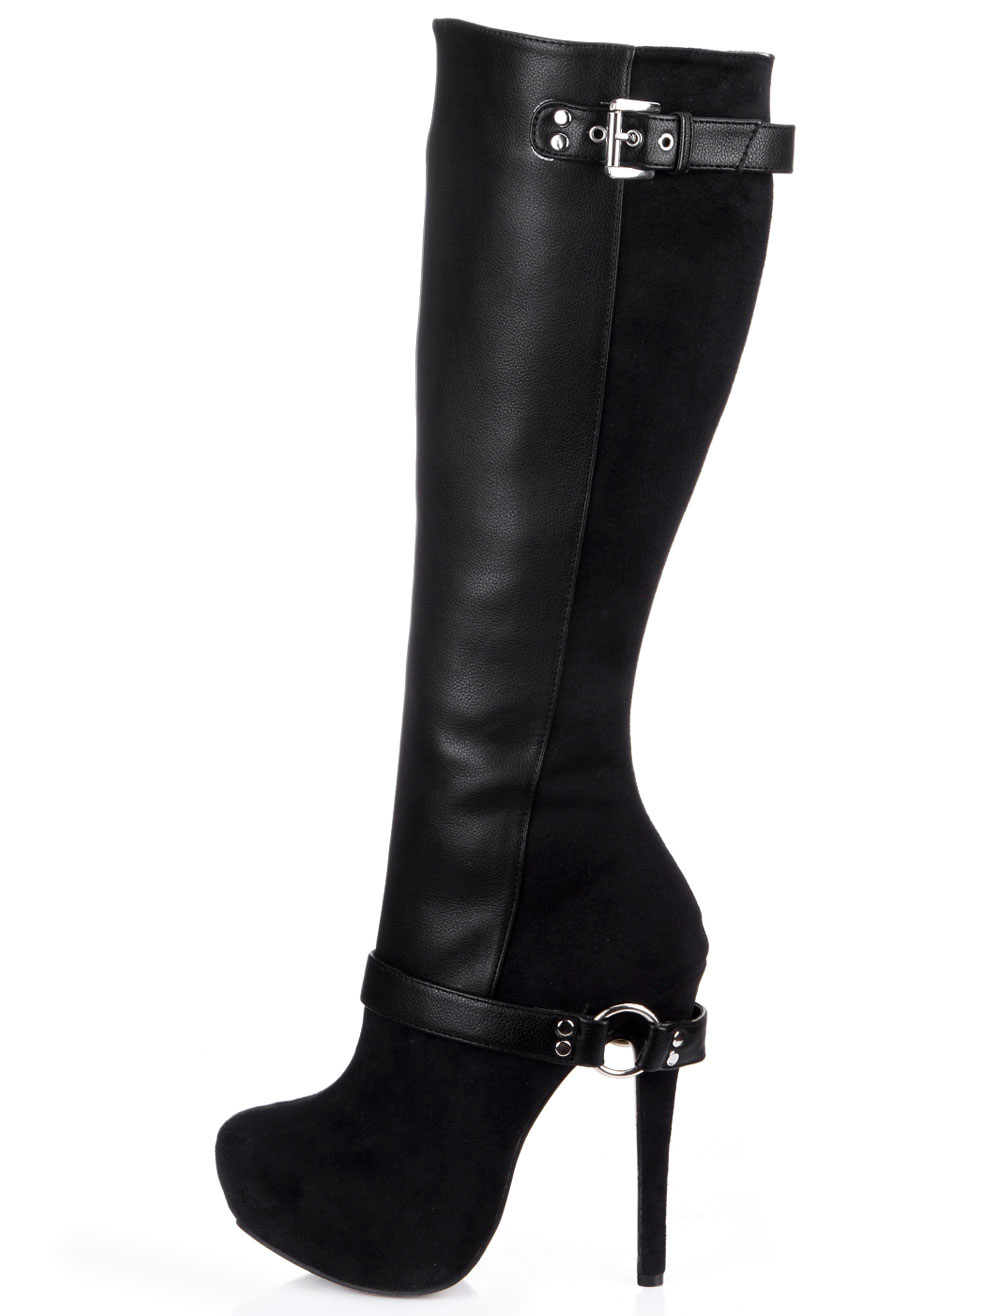 Black Almond Toe Stiletto Heel Zipper PU Leather Attractive Women's Knee Length Boots